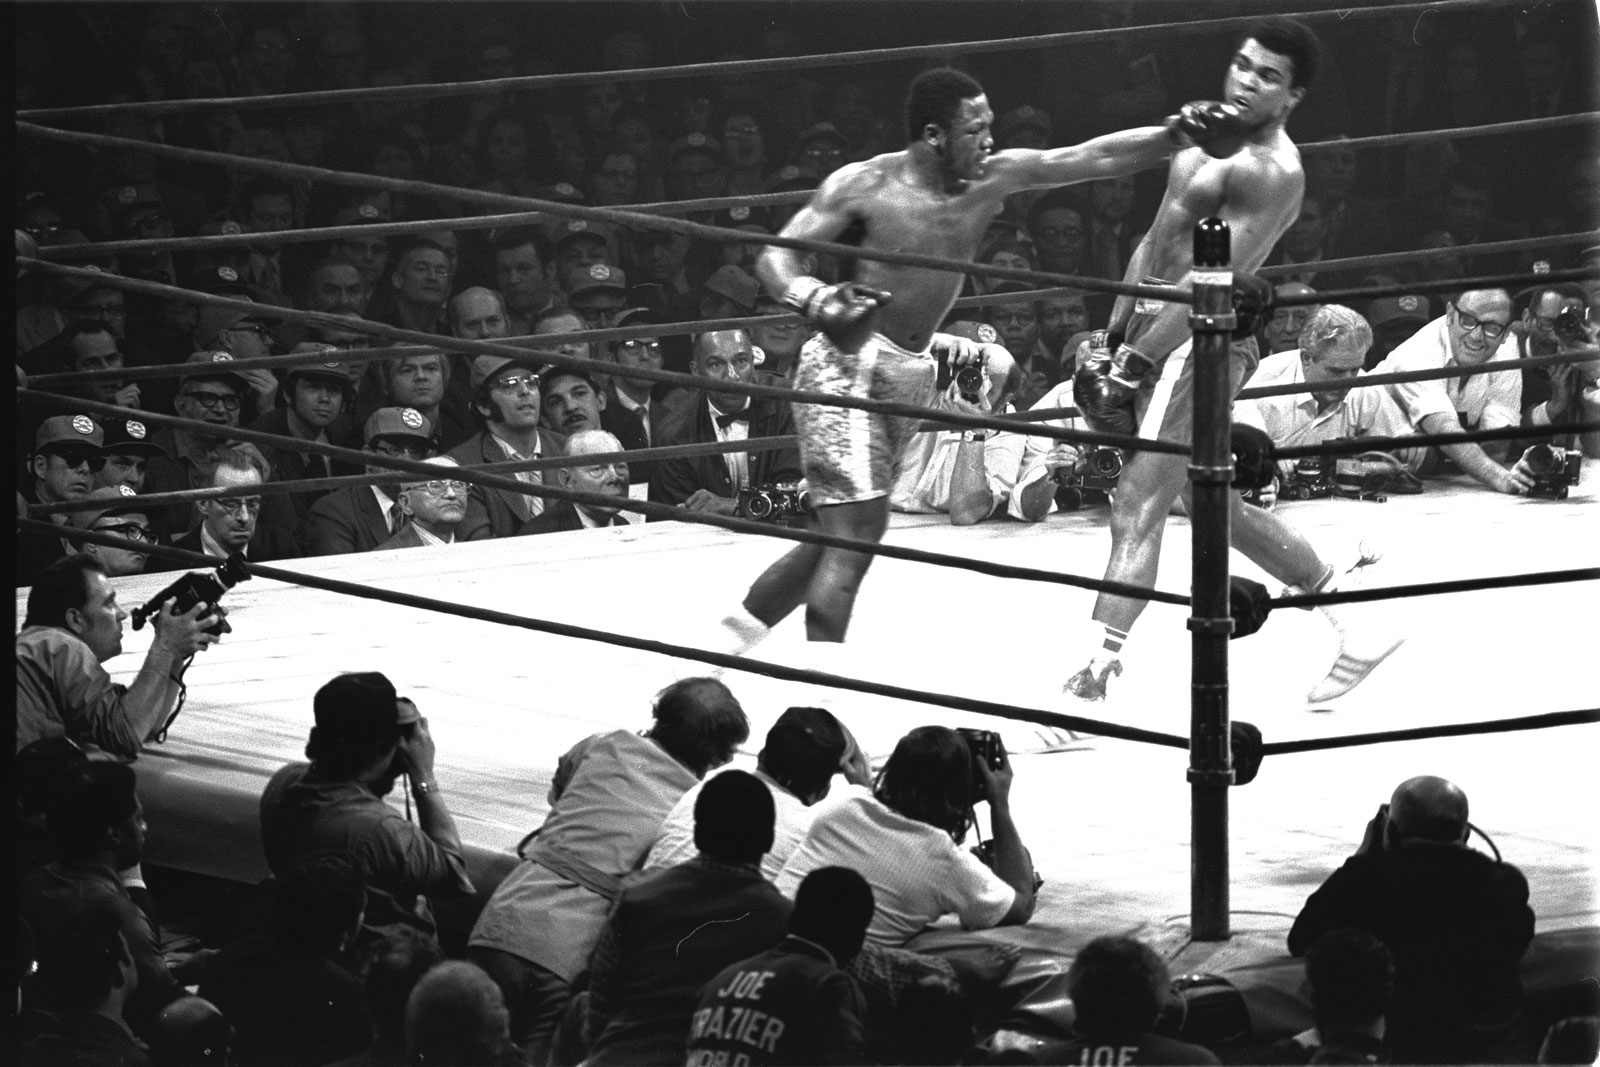 Joe Frazier Vs Muhammad Ali The Fight Of The Century